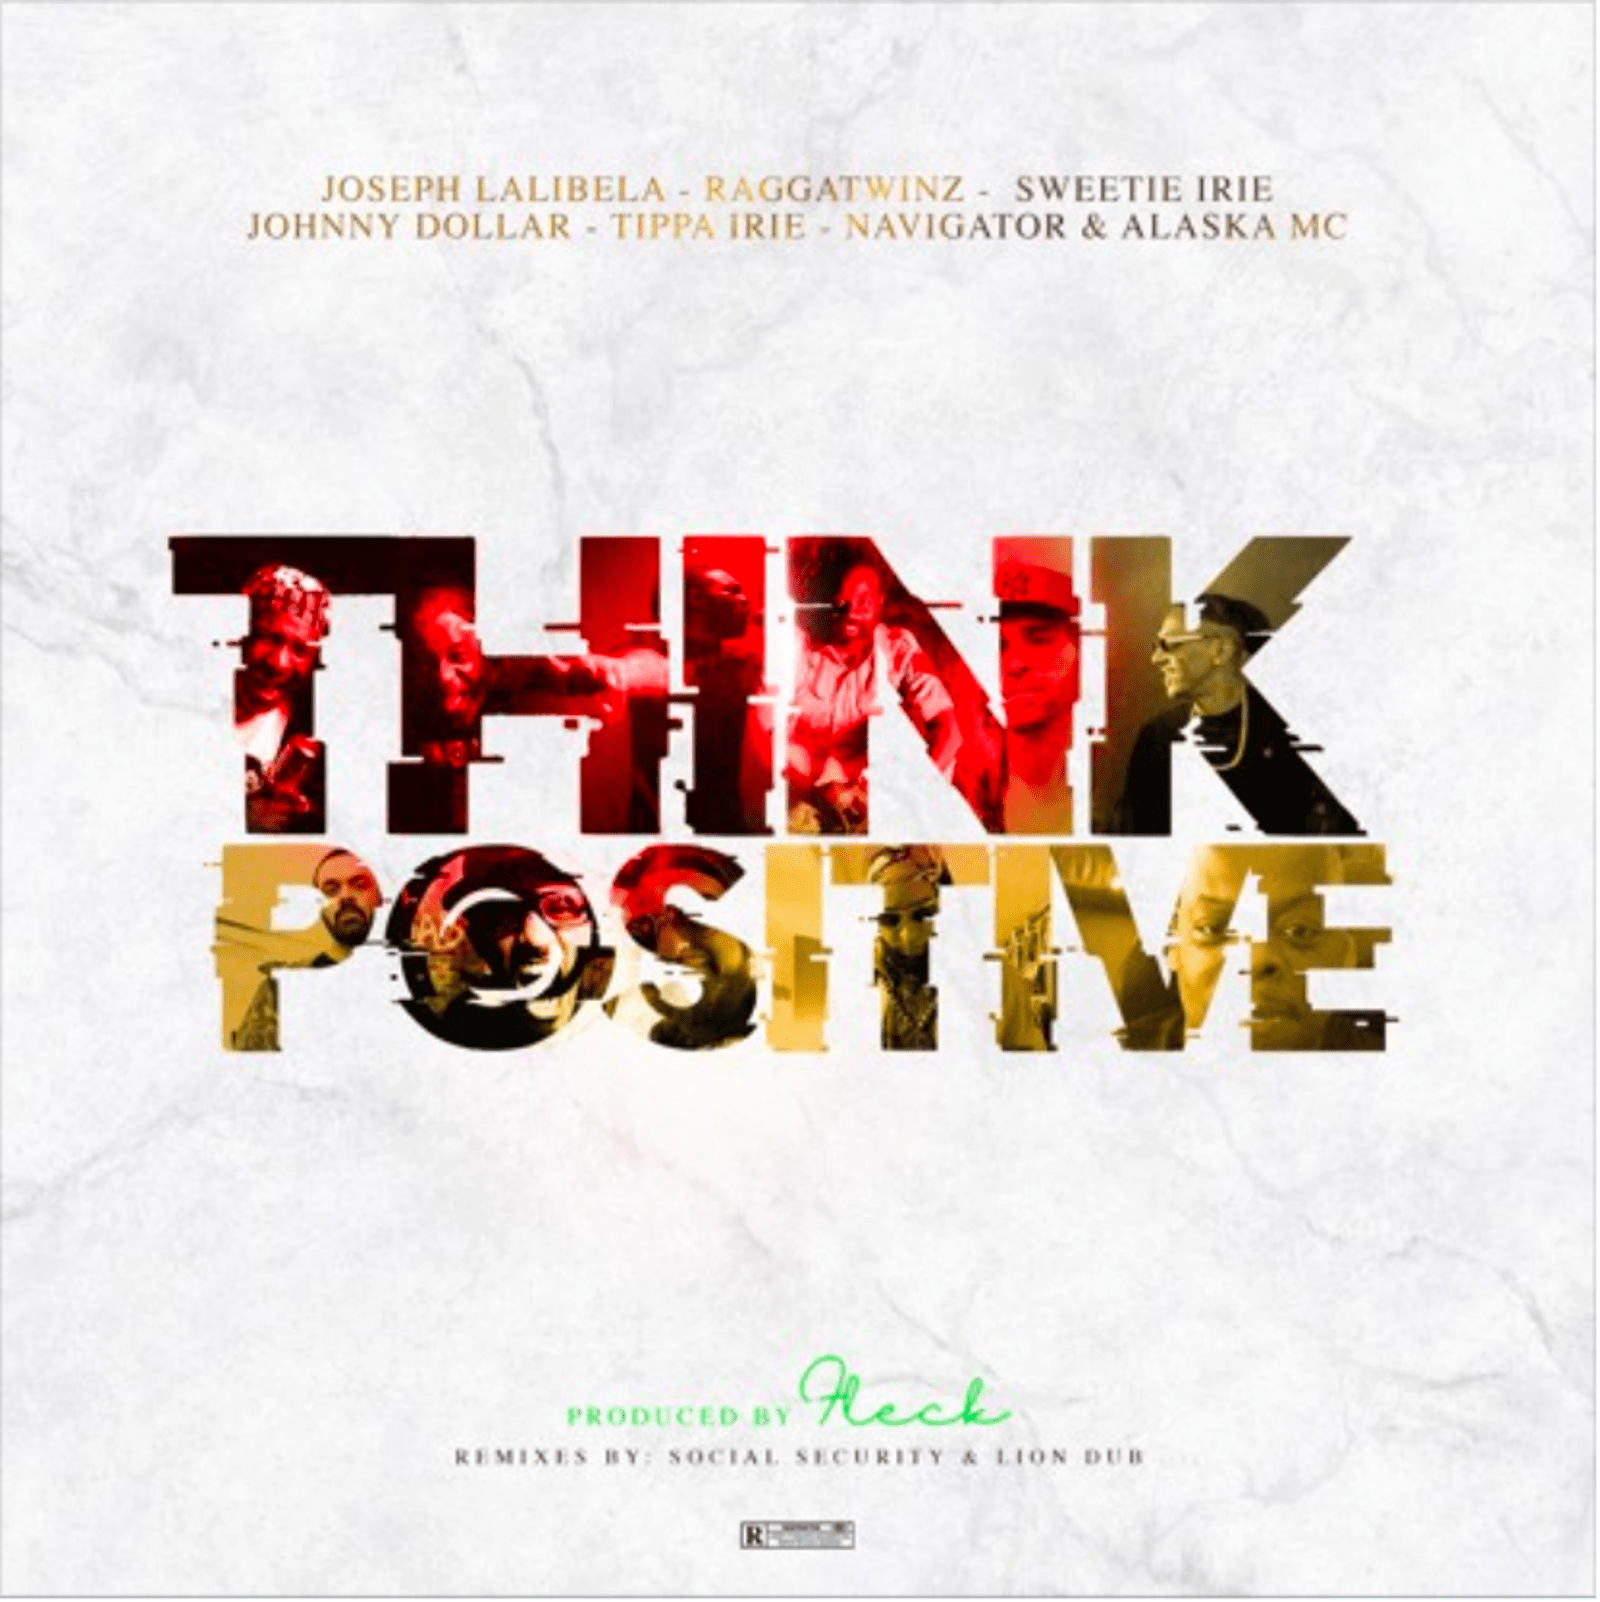 celebration_of_life_-_think_positive_dolly_recordings.png